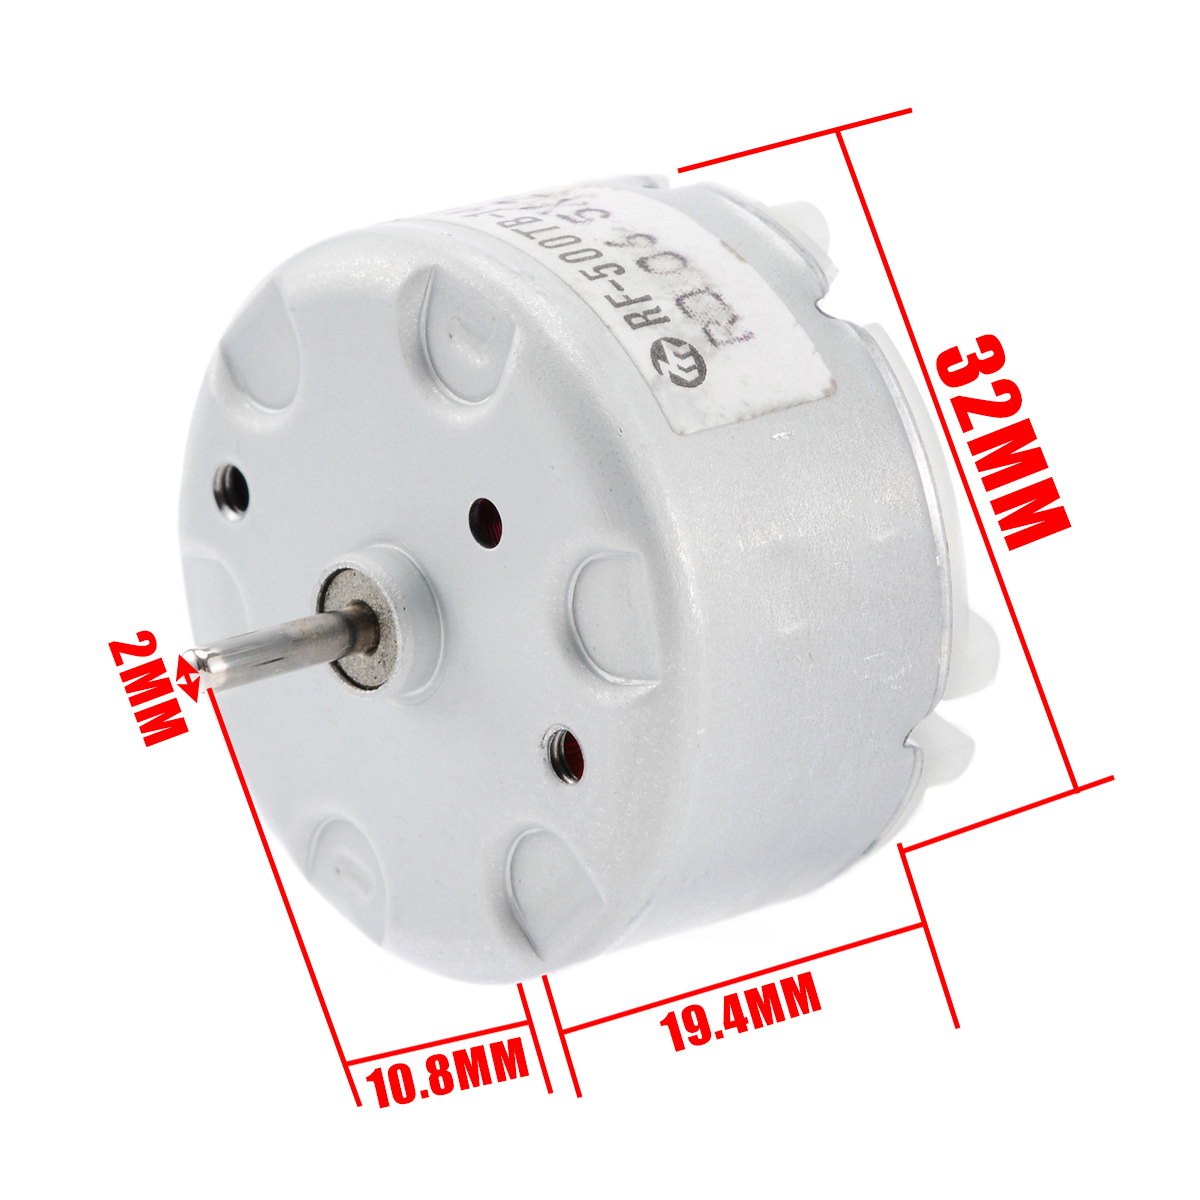 1PCS DC5V 80RPM L-Shaped 020 Gear Motor with Plastic Gearbox For DIY Toy Model